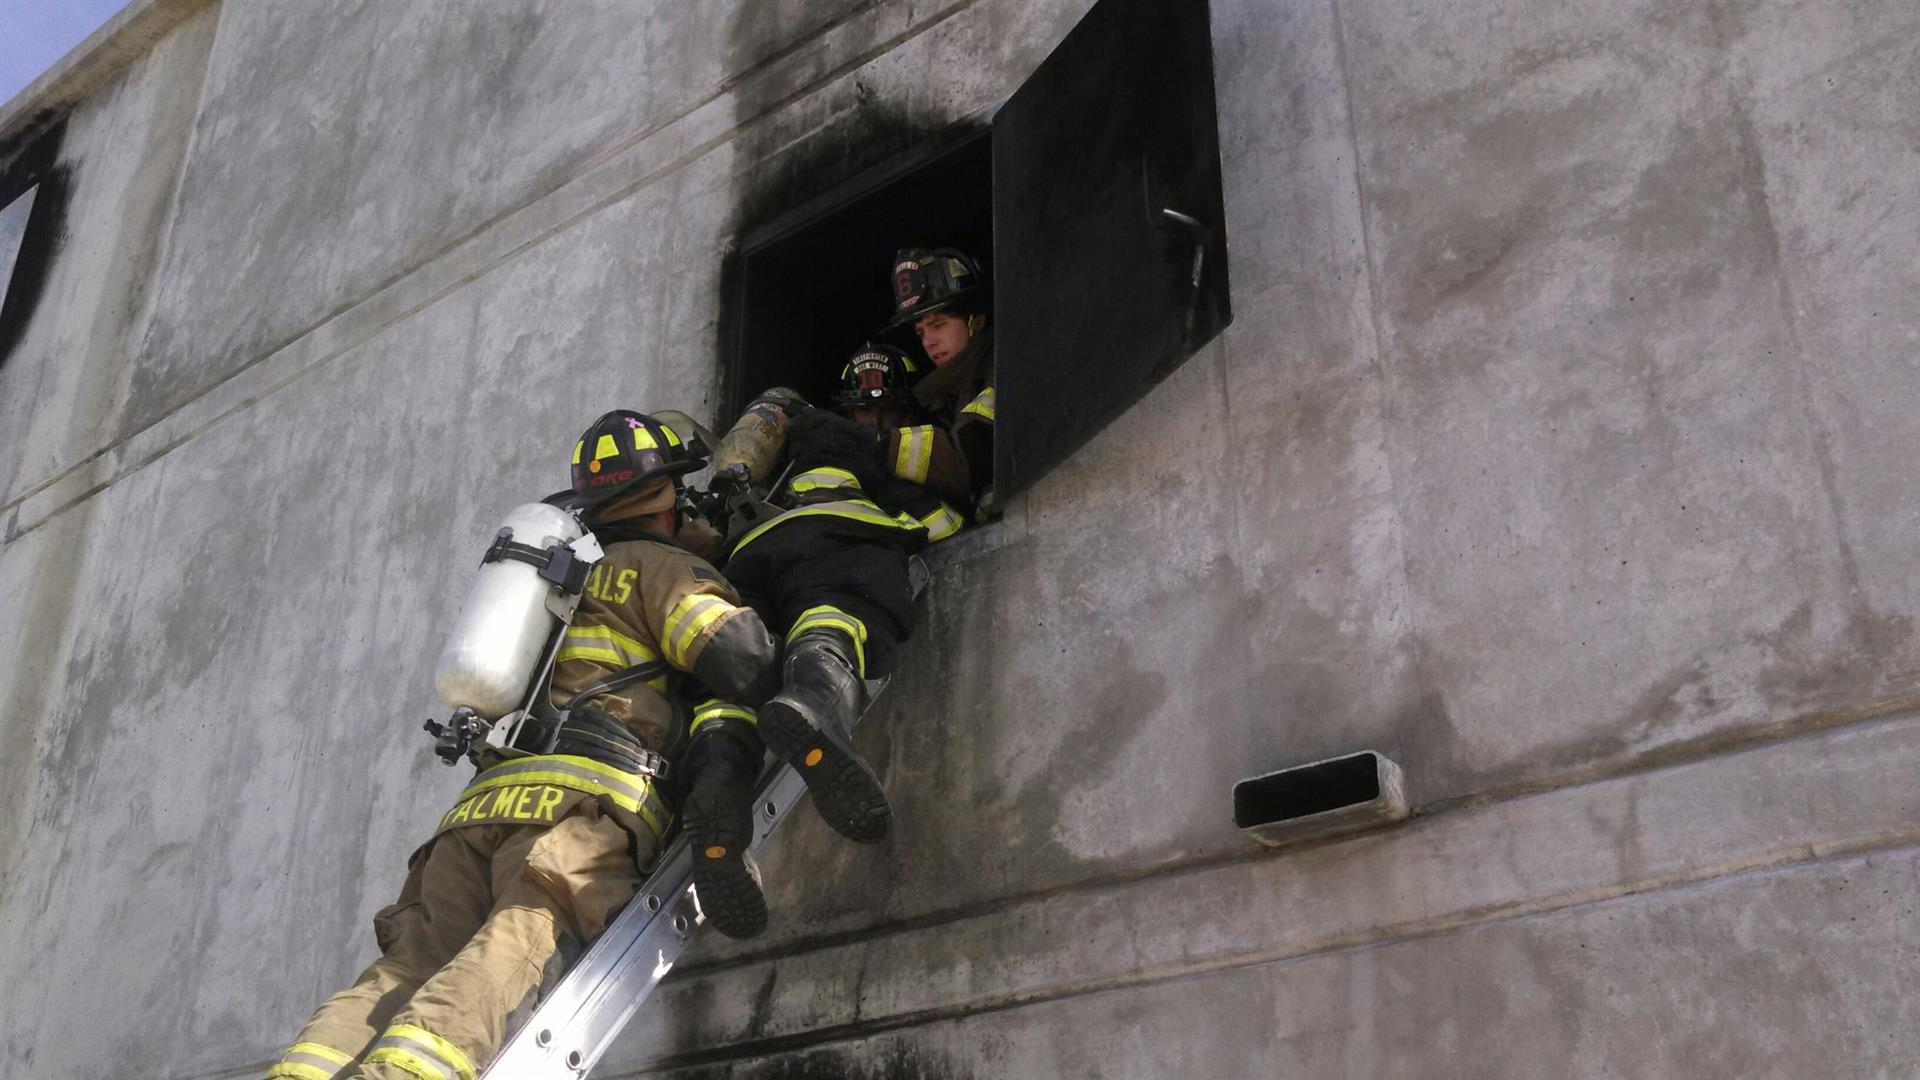 Training with ladder rescue in concrete building